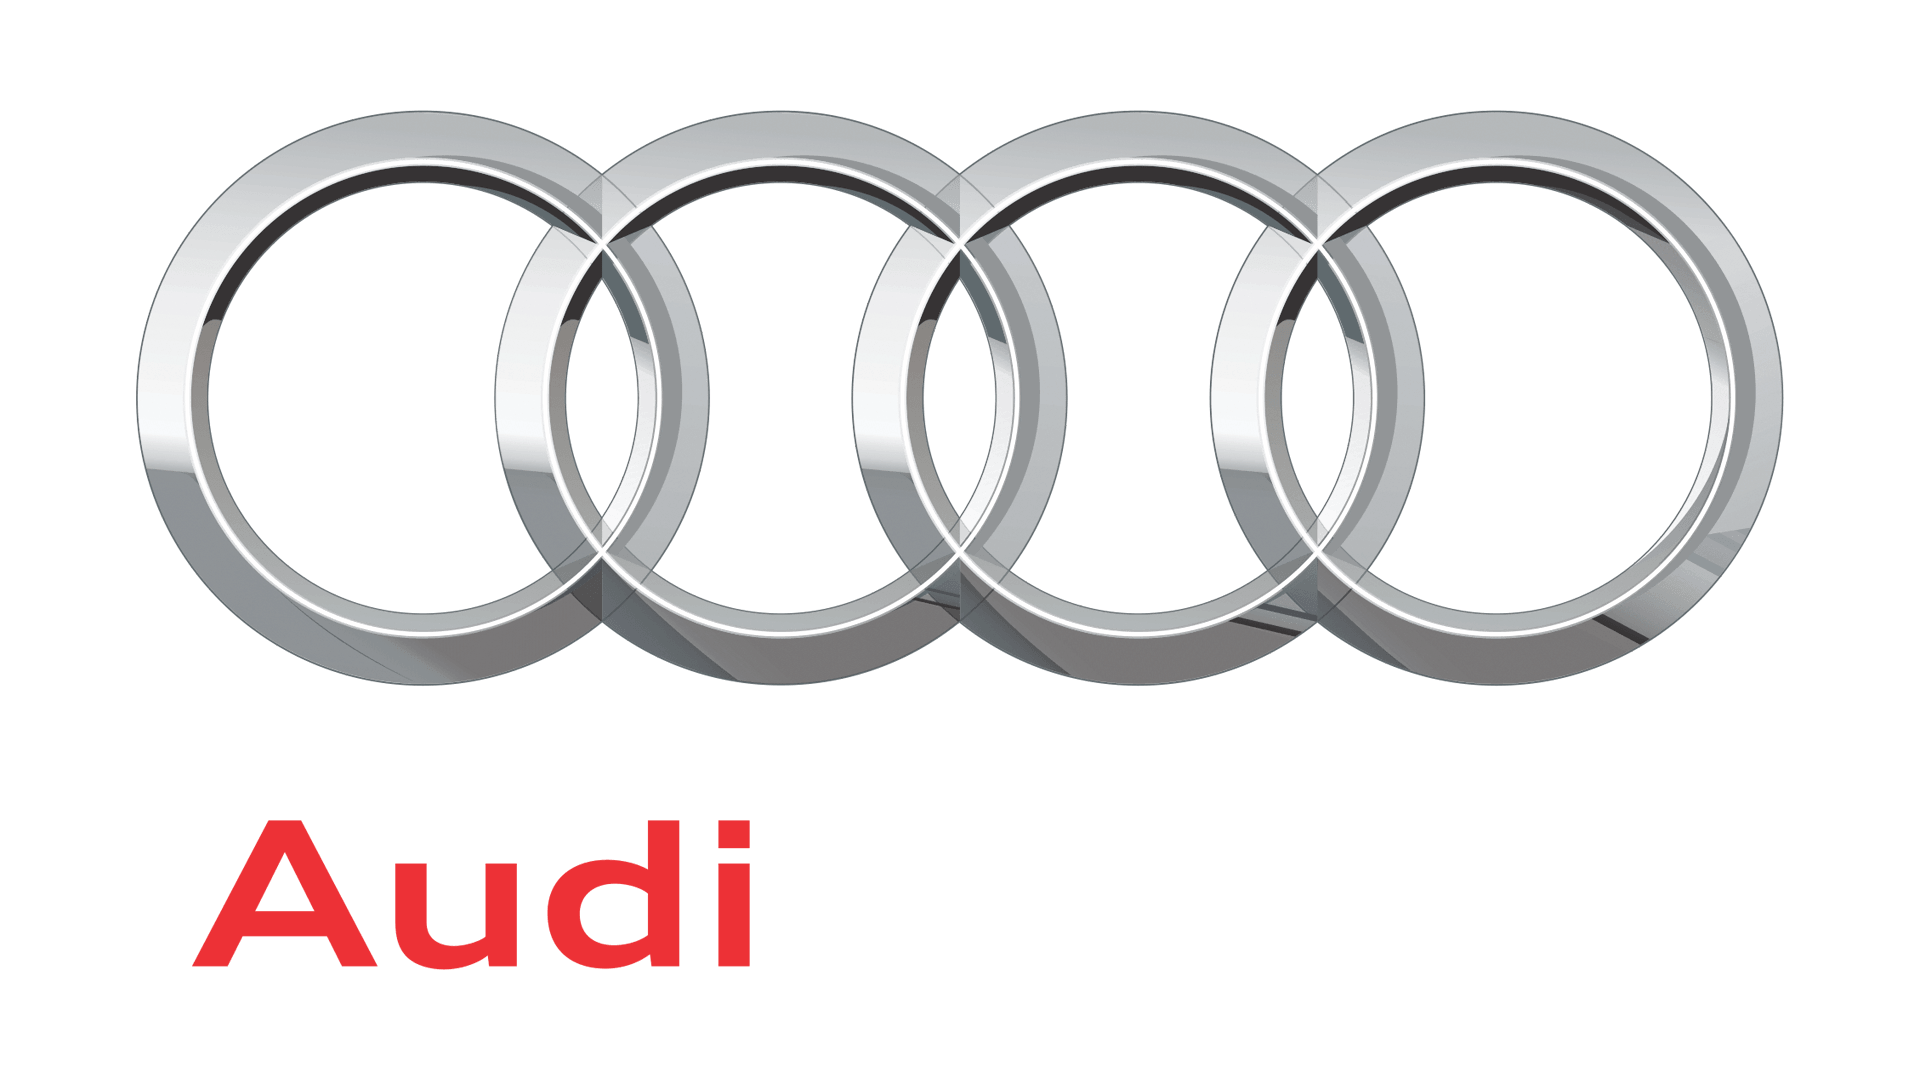 audi logo transparent. car logo audi transparent d